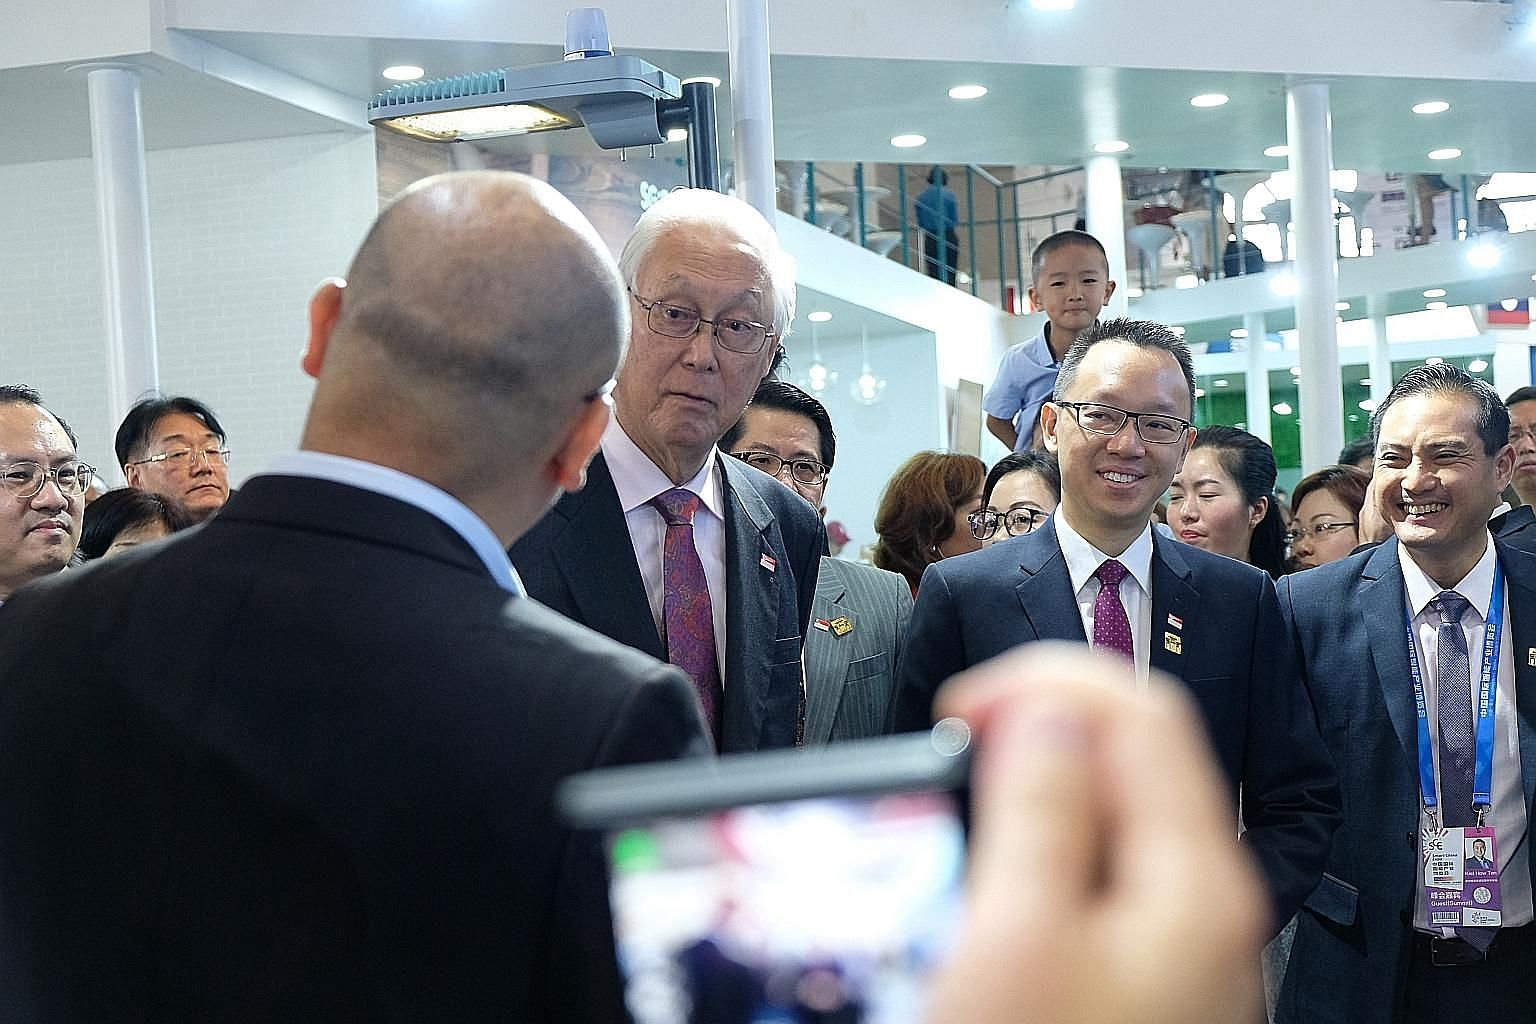 Emeritus Senior Minister Goh Chok Tong and Senior Parliamentary Secretary for Trade and Industry and Foreign Affairs Tan Wu Meng (second from right) on a tour of the Singapore pavilion at the Smart China Expo in Chongqing yesterday.